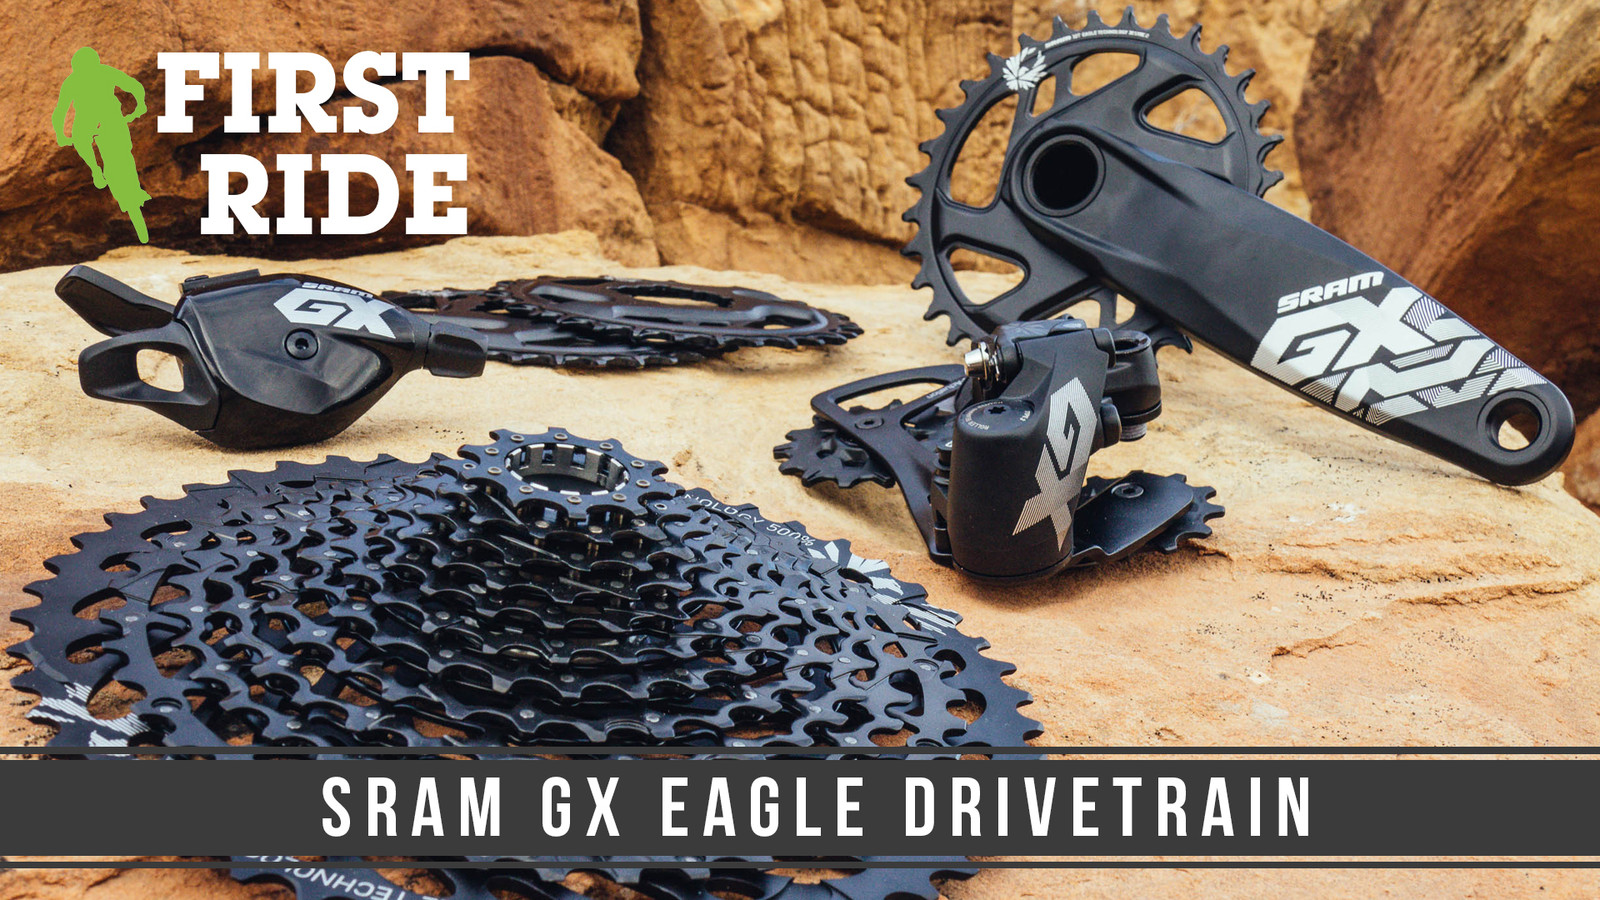 First Look, First Ride: SRAM GX Eagle Drivetrain - More Range For All